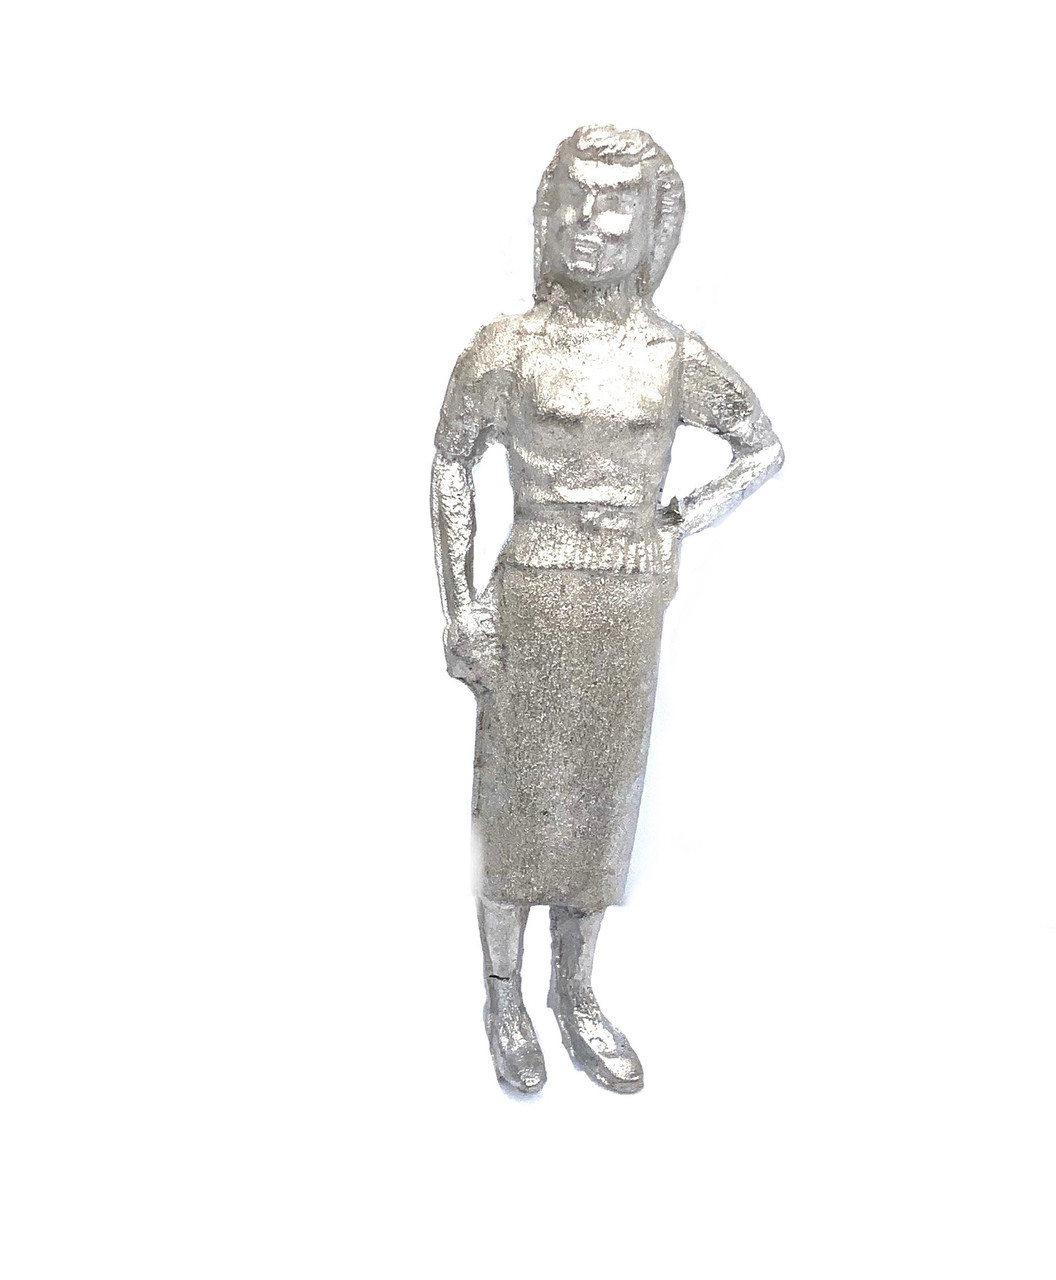 48-1427 Lady in Pencil Skirt with Hand on Hip FKA Keil Line O scale